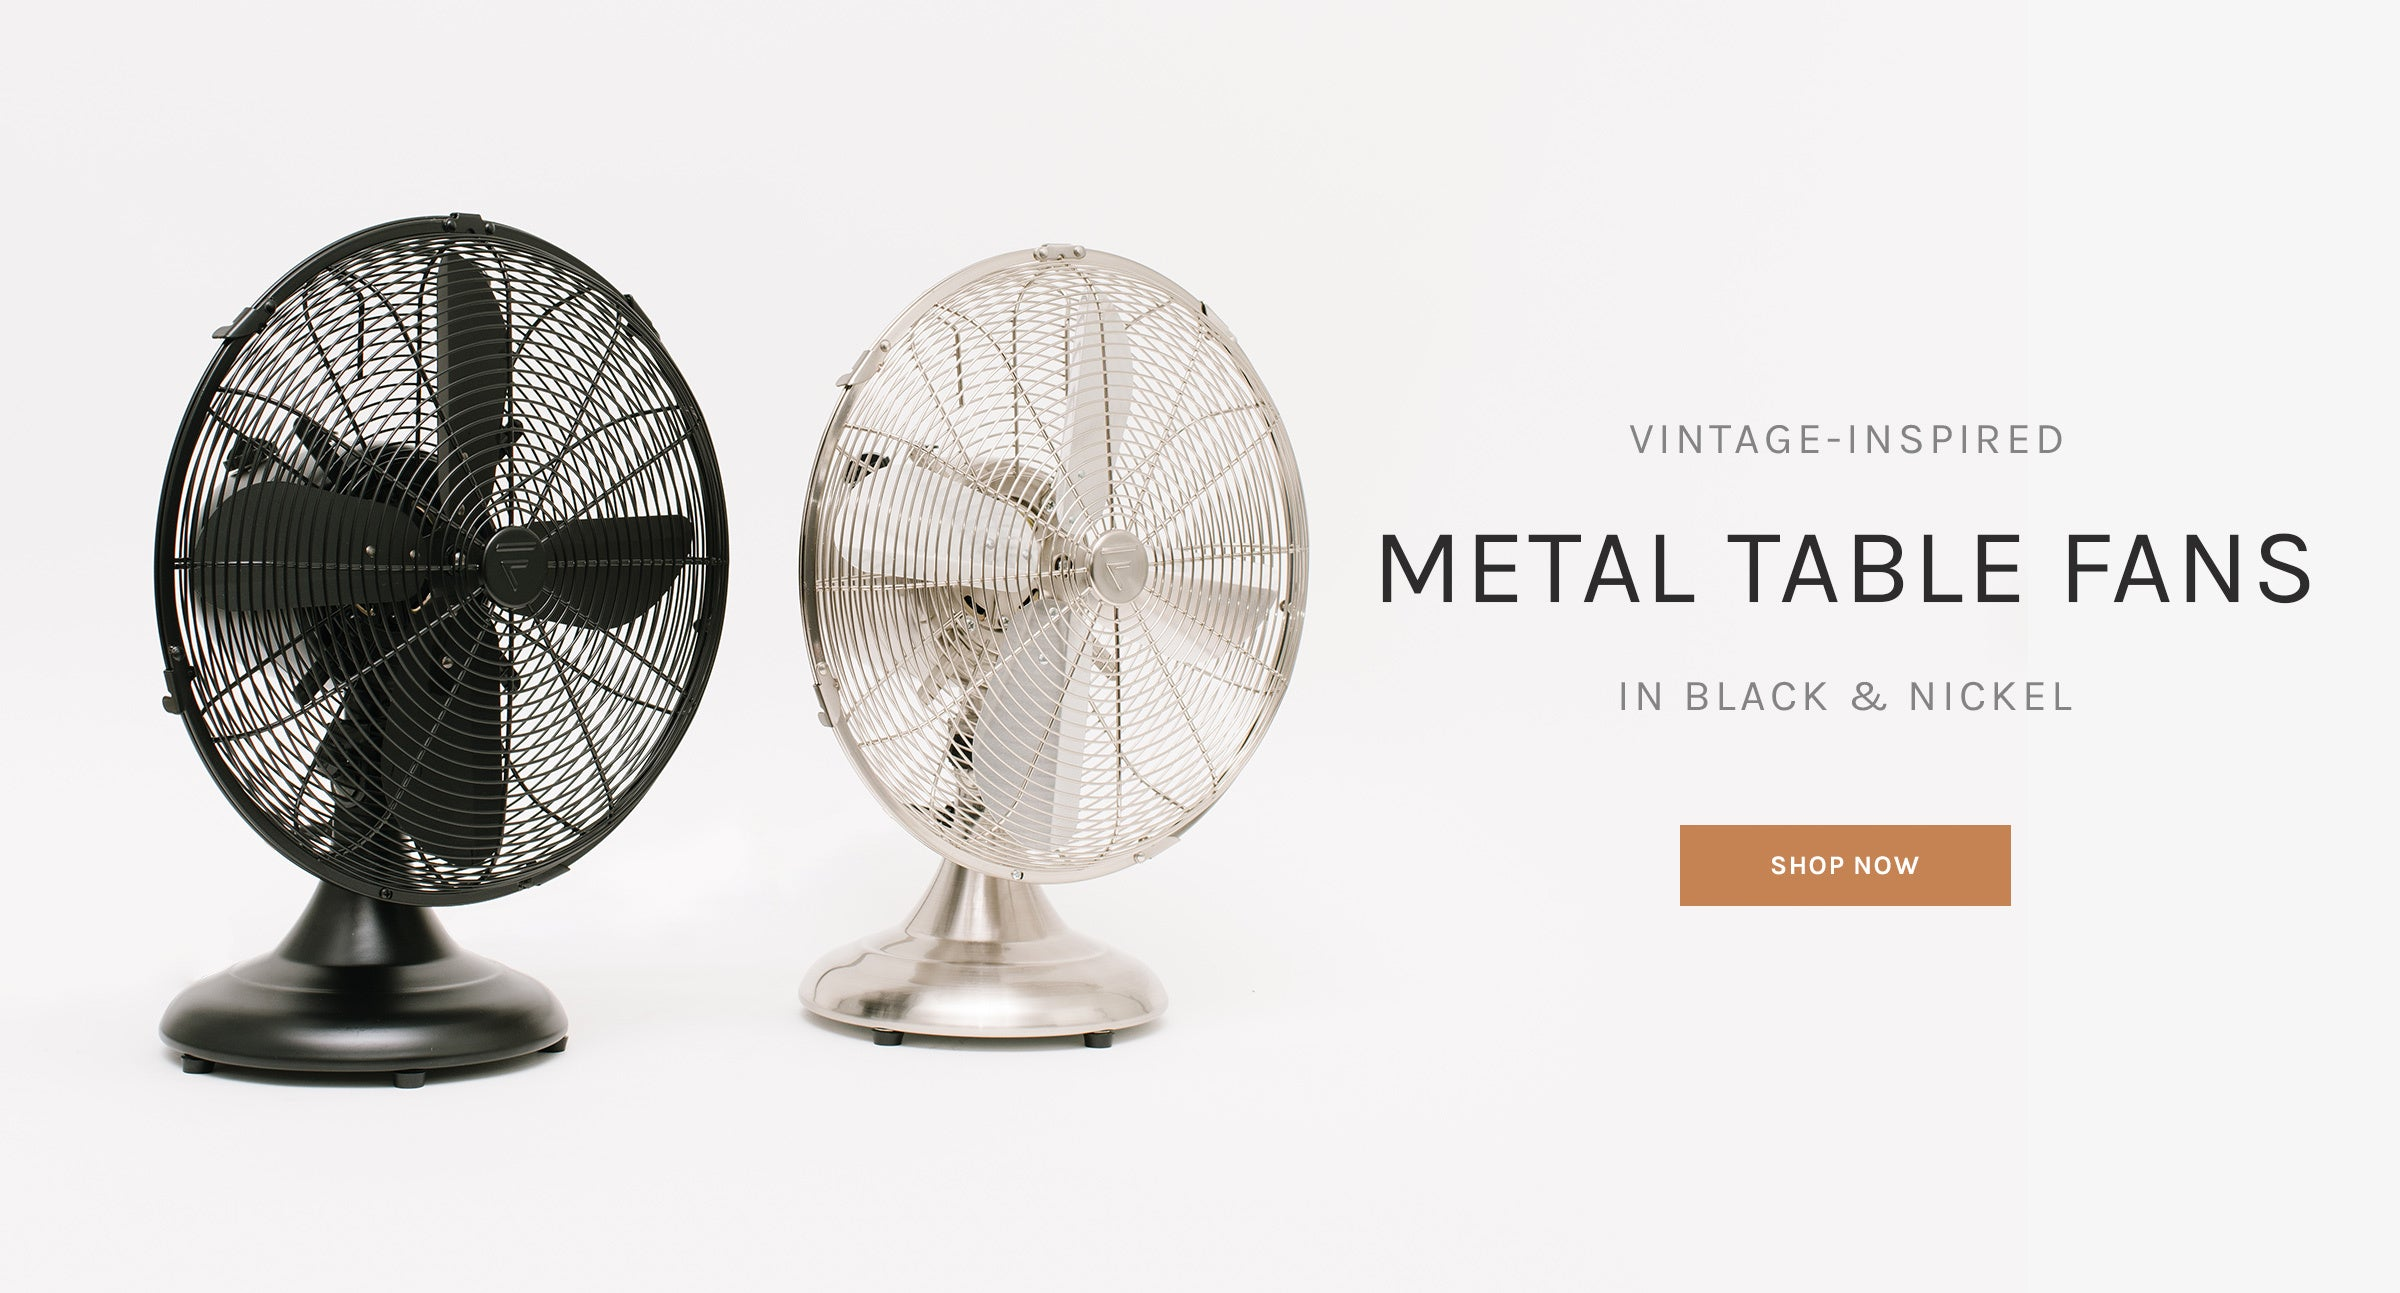 Vintage-Inspired Metal Table Fans